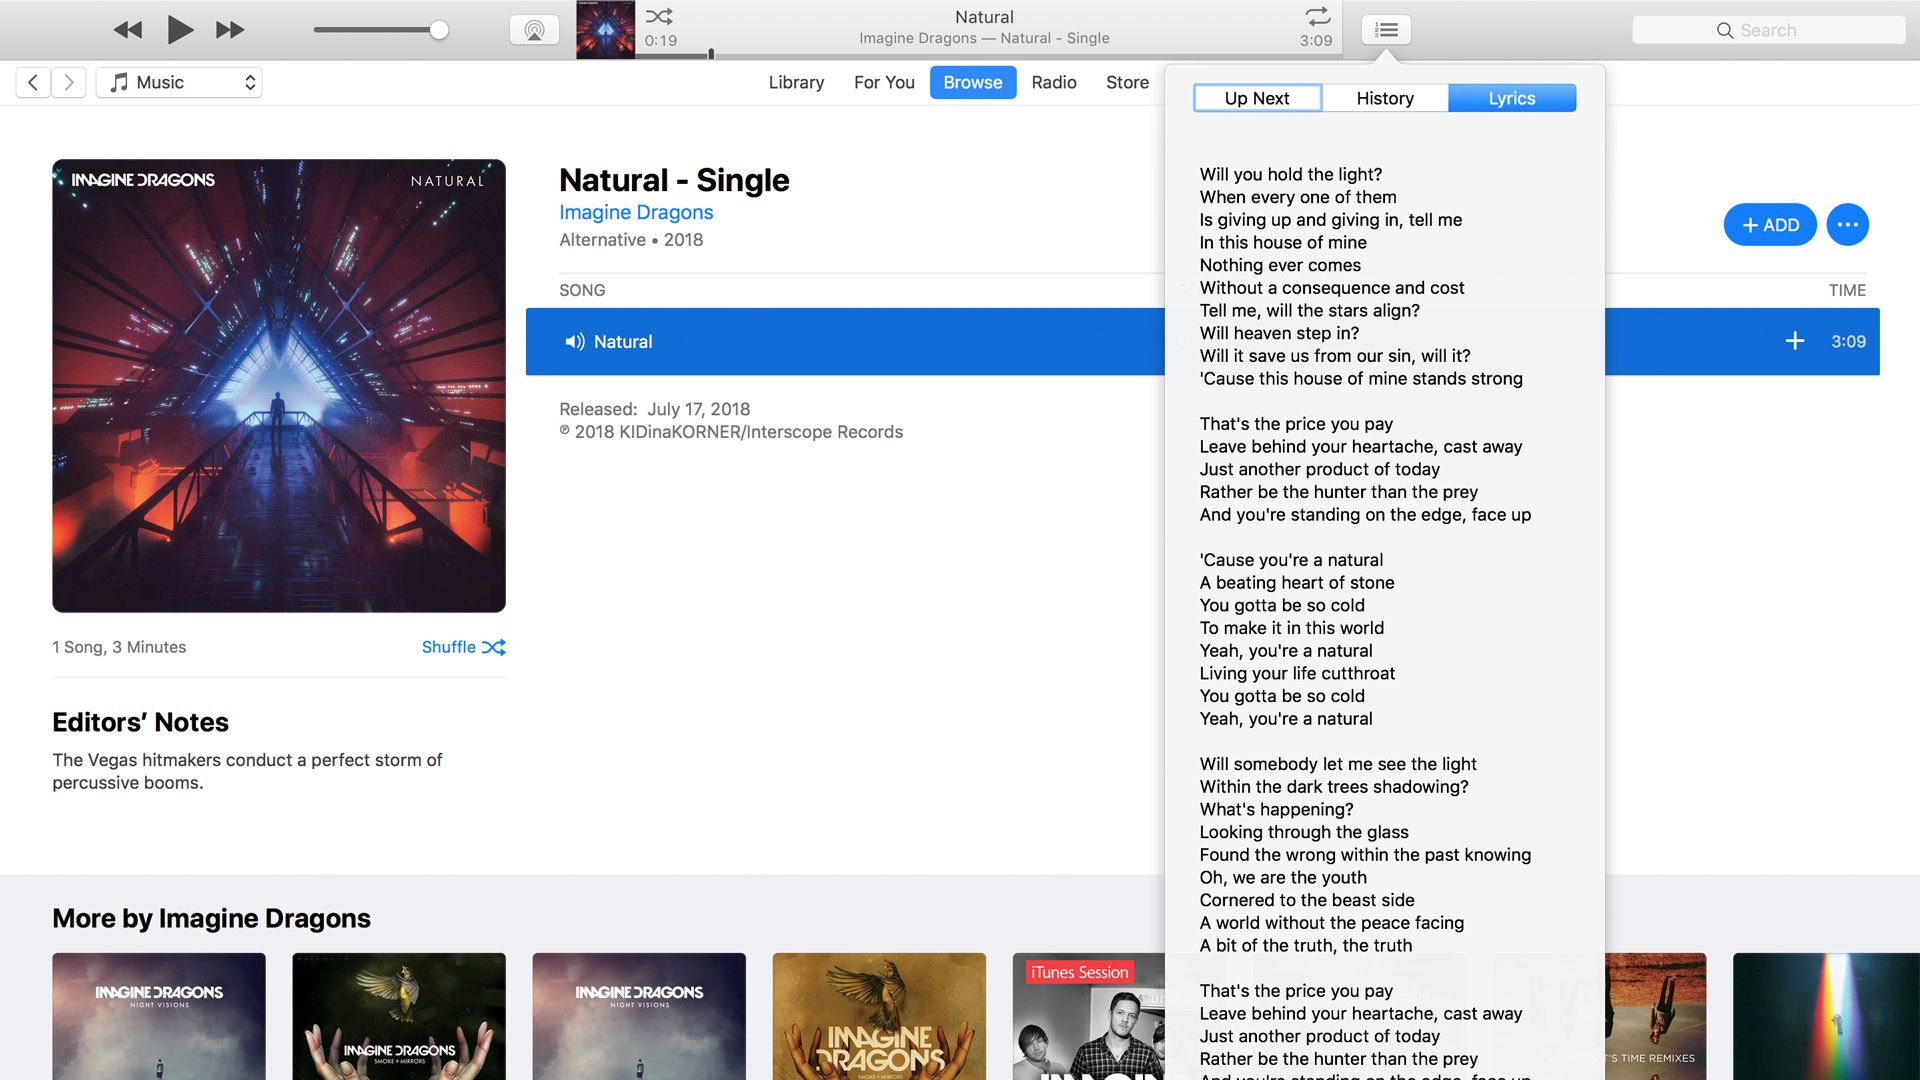 You can read lyrics for any song in Apple Music.